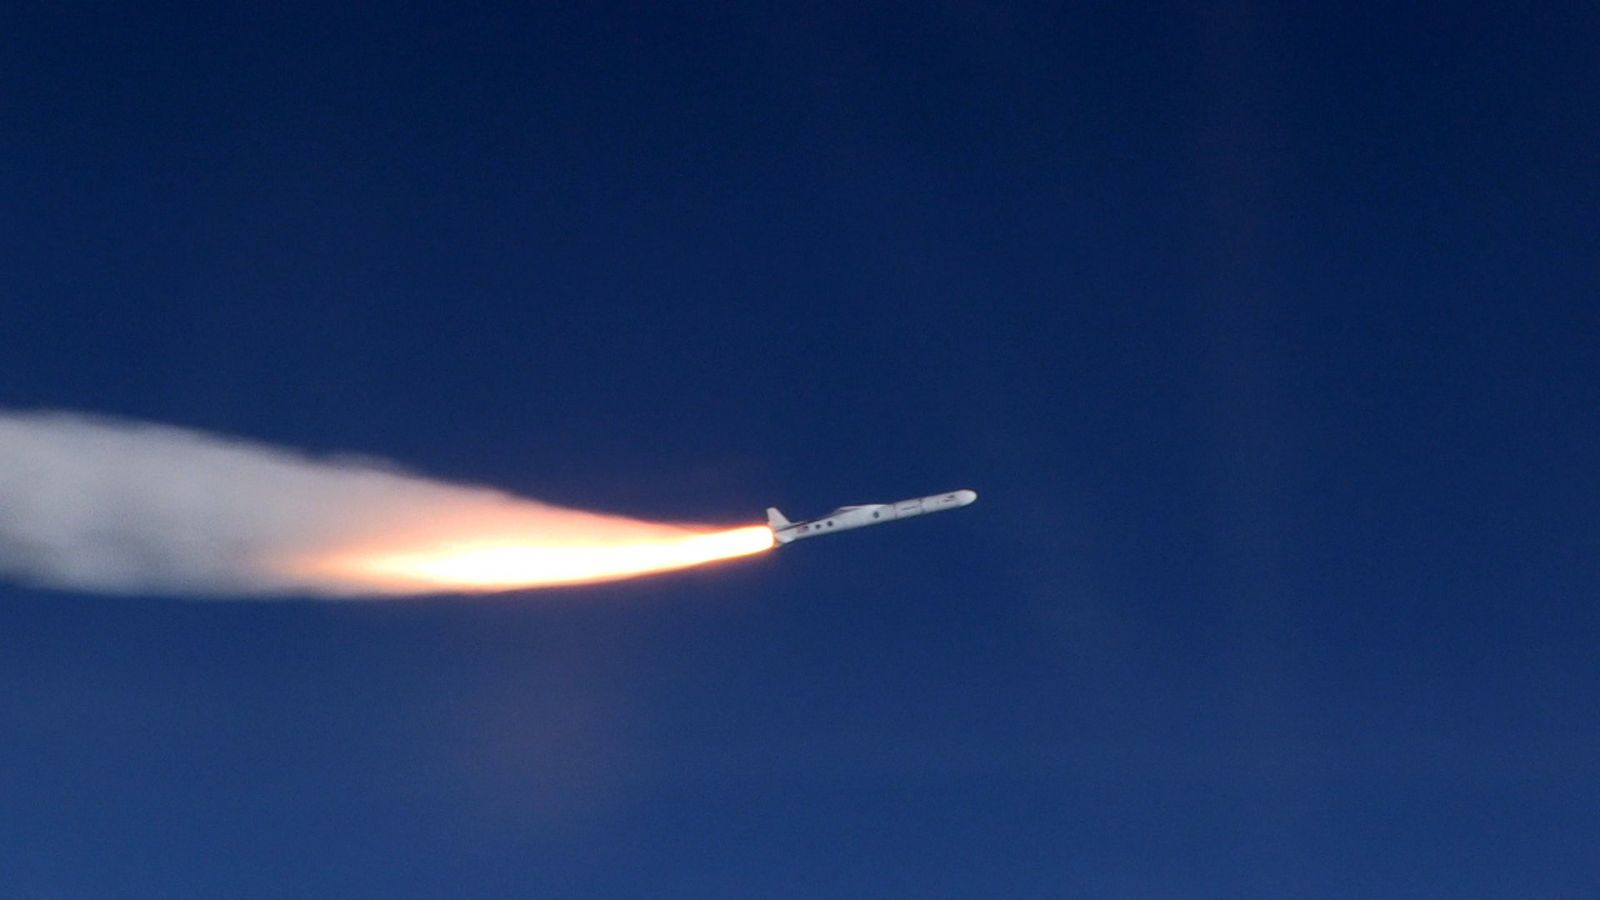 - Pegasus CYGNSS launch 2016 12 15 o - Pegasus XL rocket to carry out Tactically Responsive Launch demo for Space Force